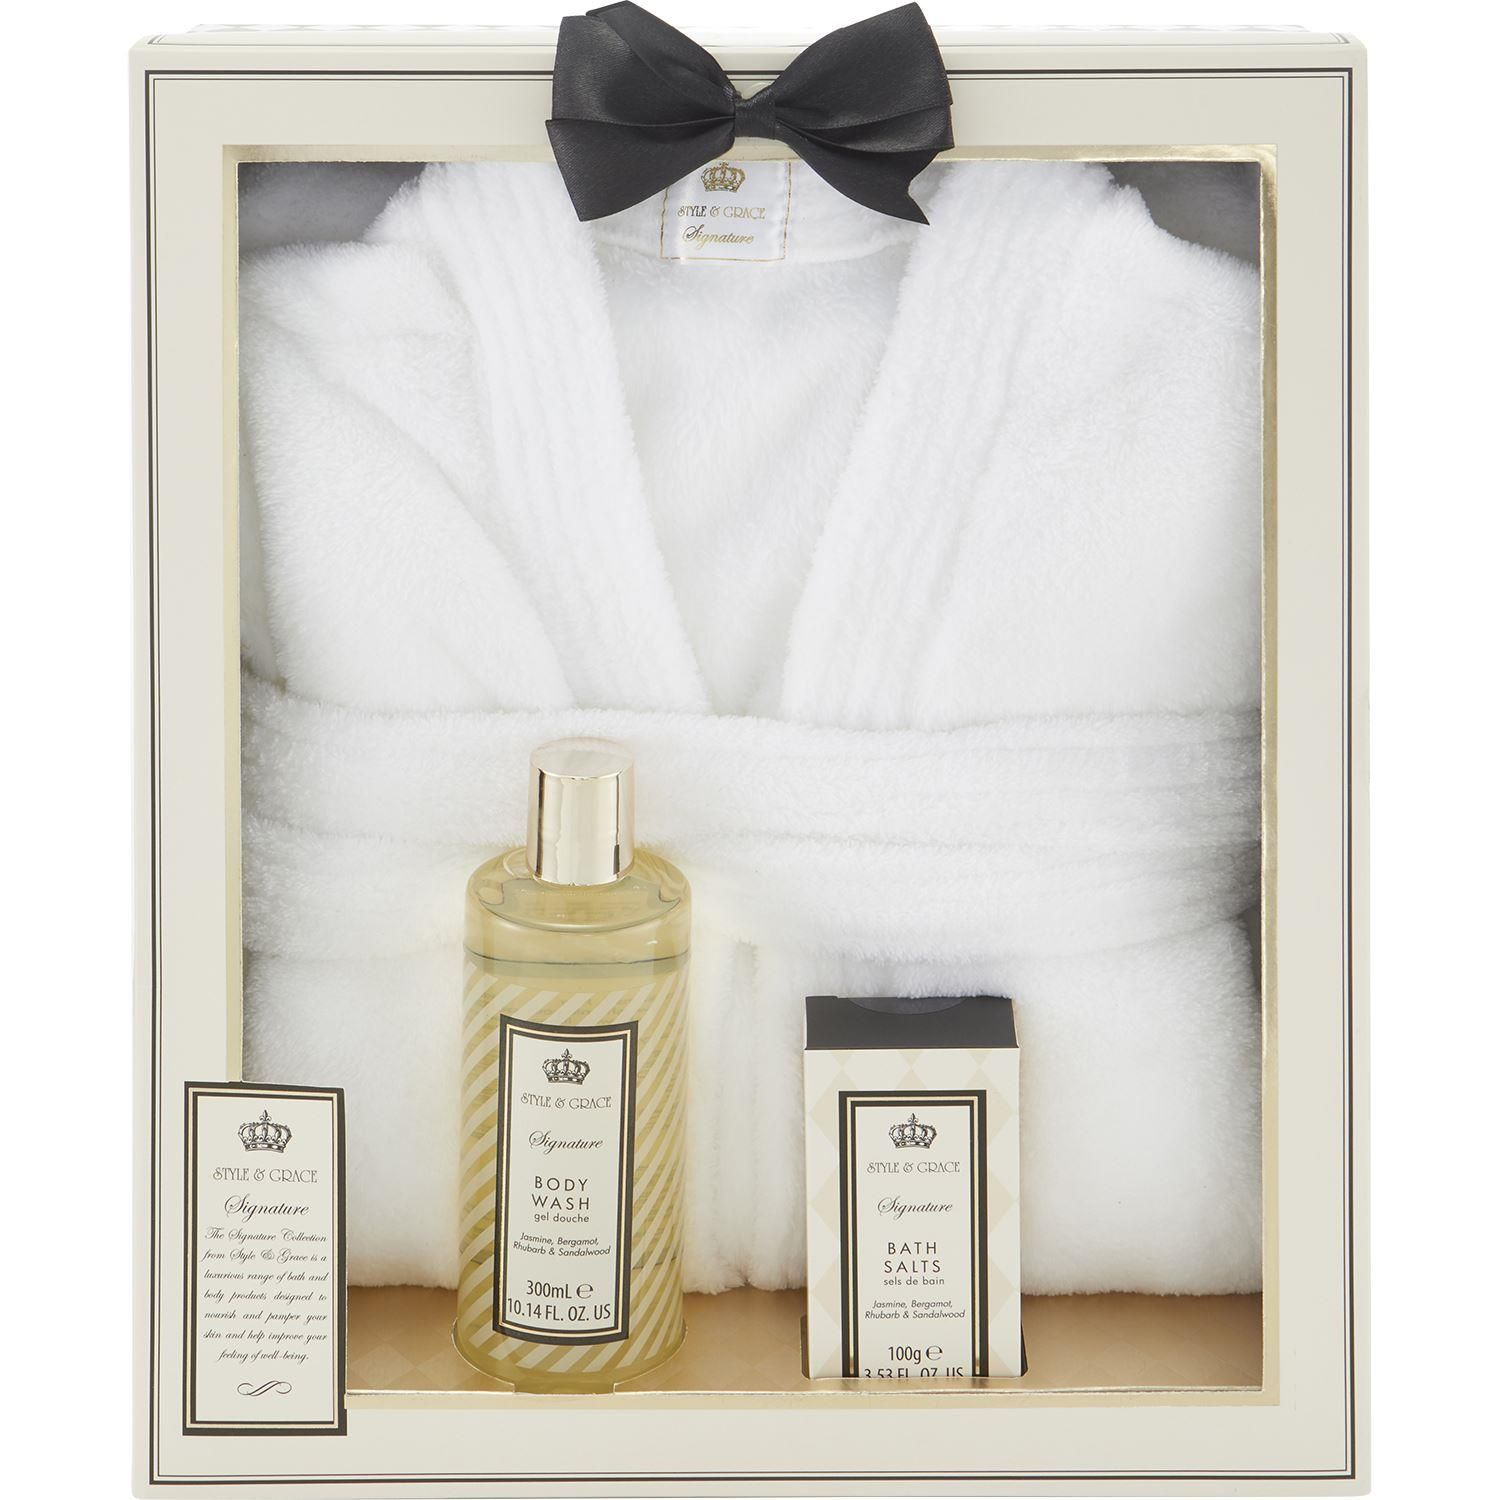 Style Grace Signature Pamper Me Robe Gift Set 3 Pieces This Gift Set Includes 1 X 300ml Body Wash 1 X 100g Bath Salts 1 X 1 Bath Robe Perfumes Of London